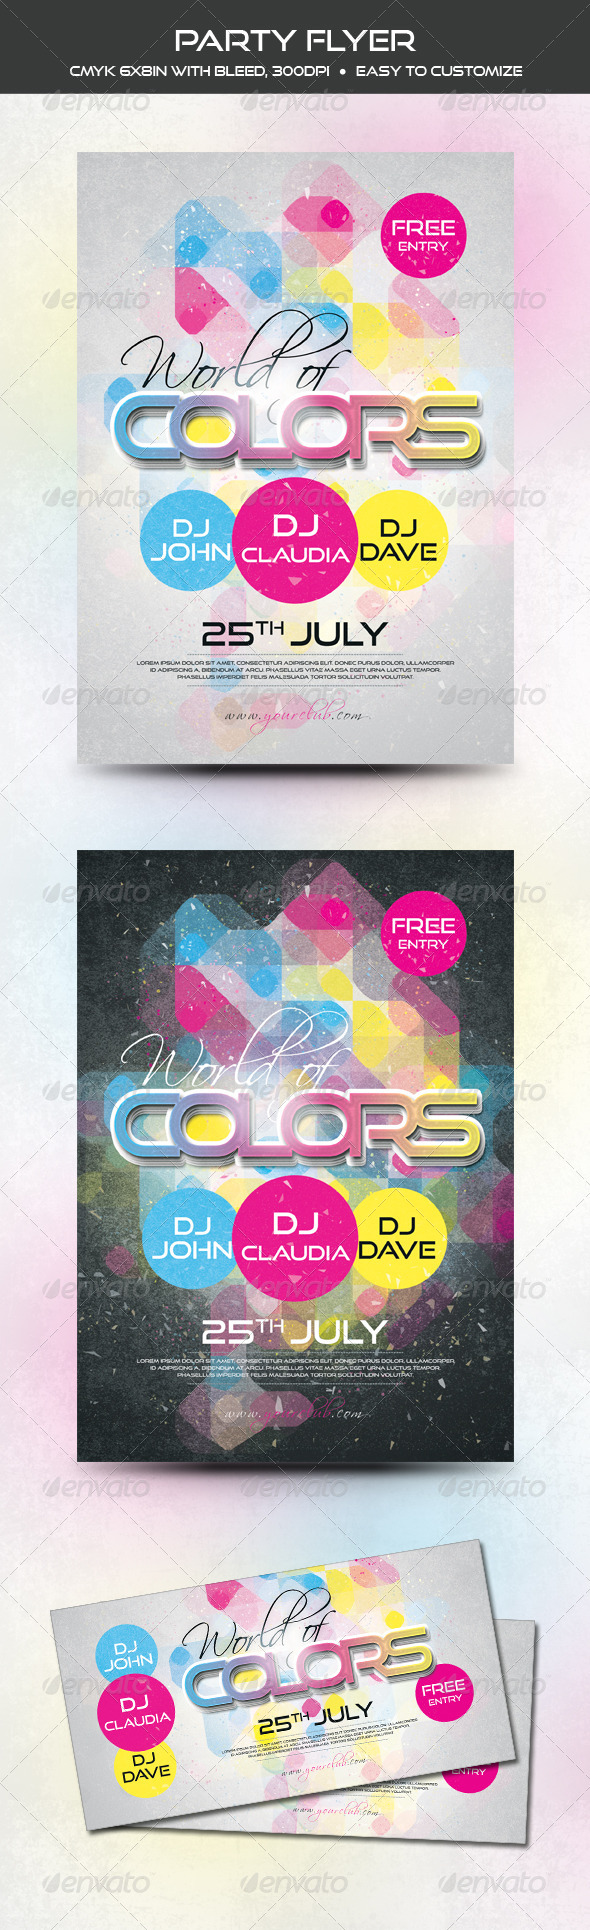 GraphicRiver Colorful Party Flyer 7499655